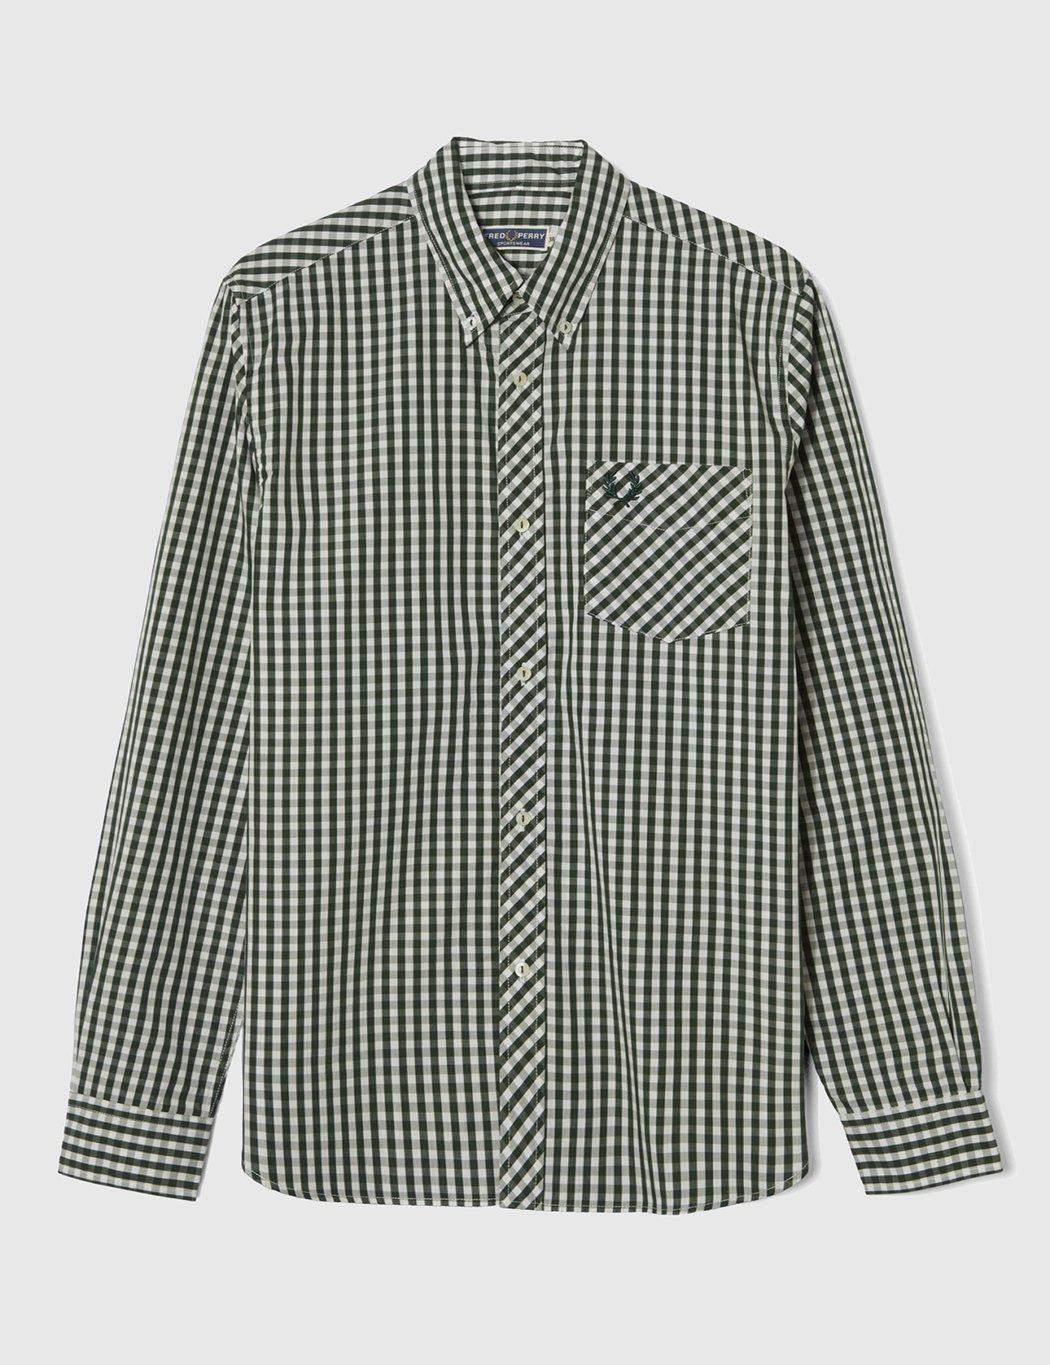 Fred Perry Cotton Gingham Shirt in Green for Men